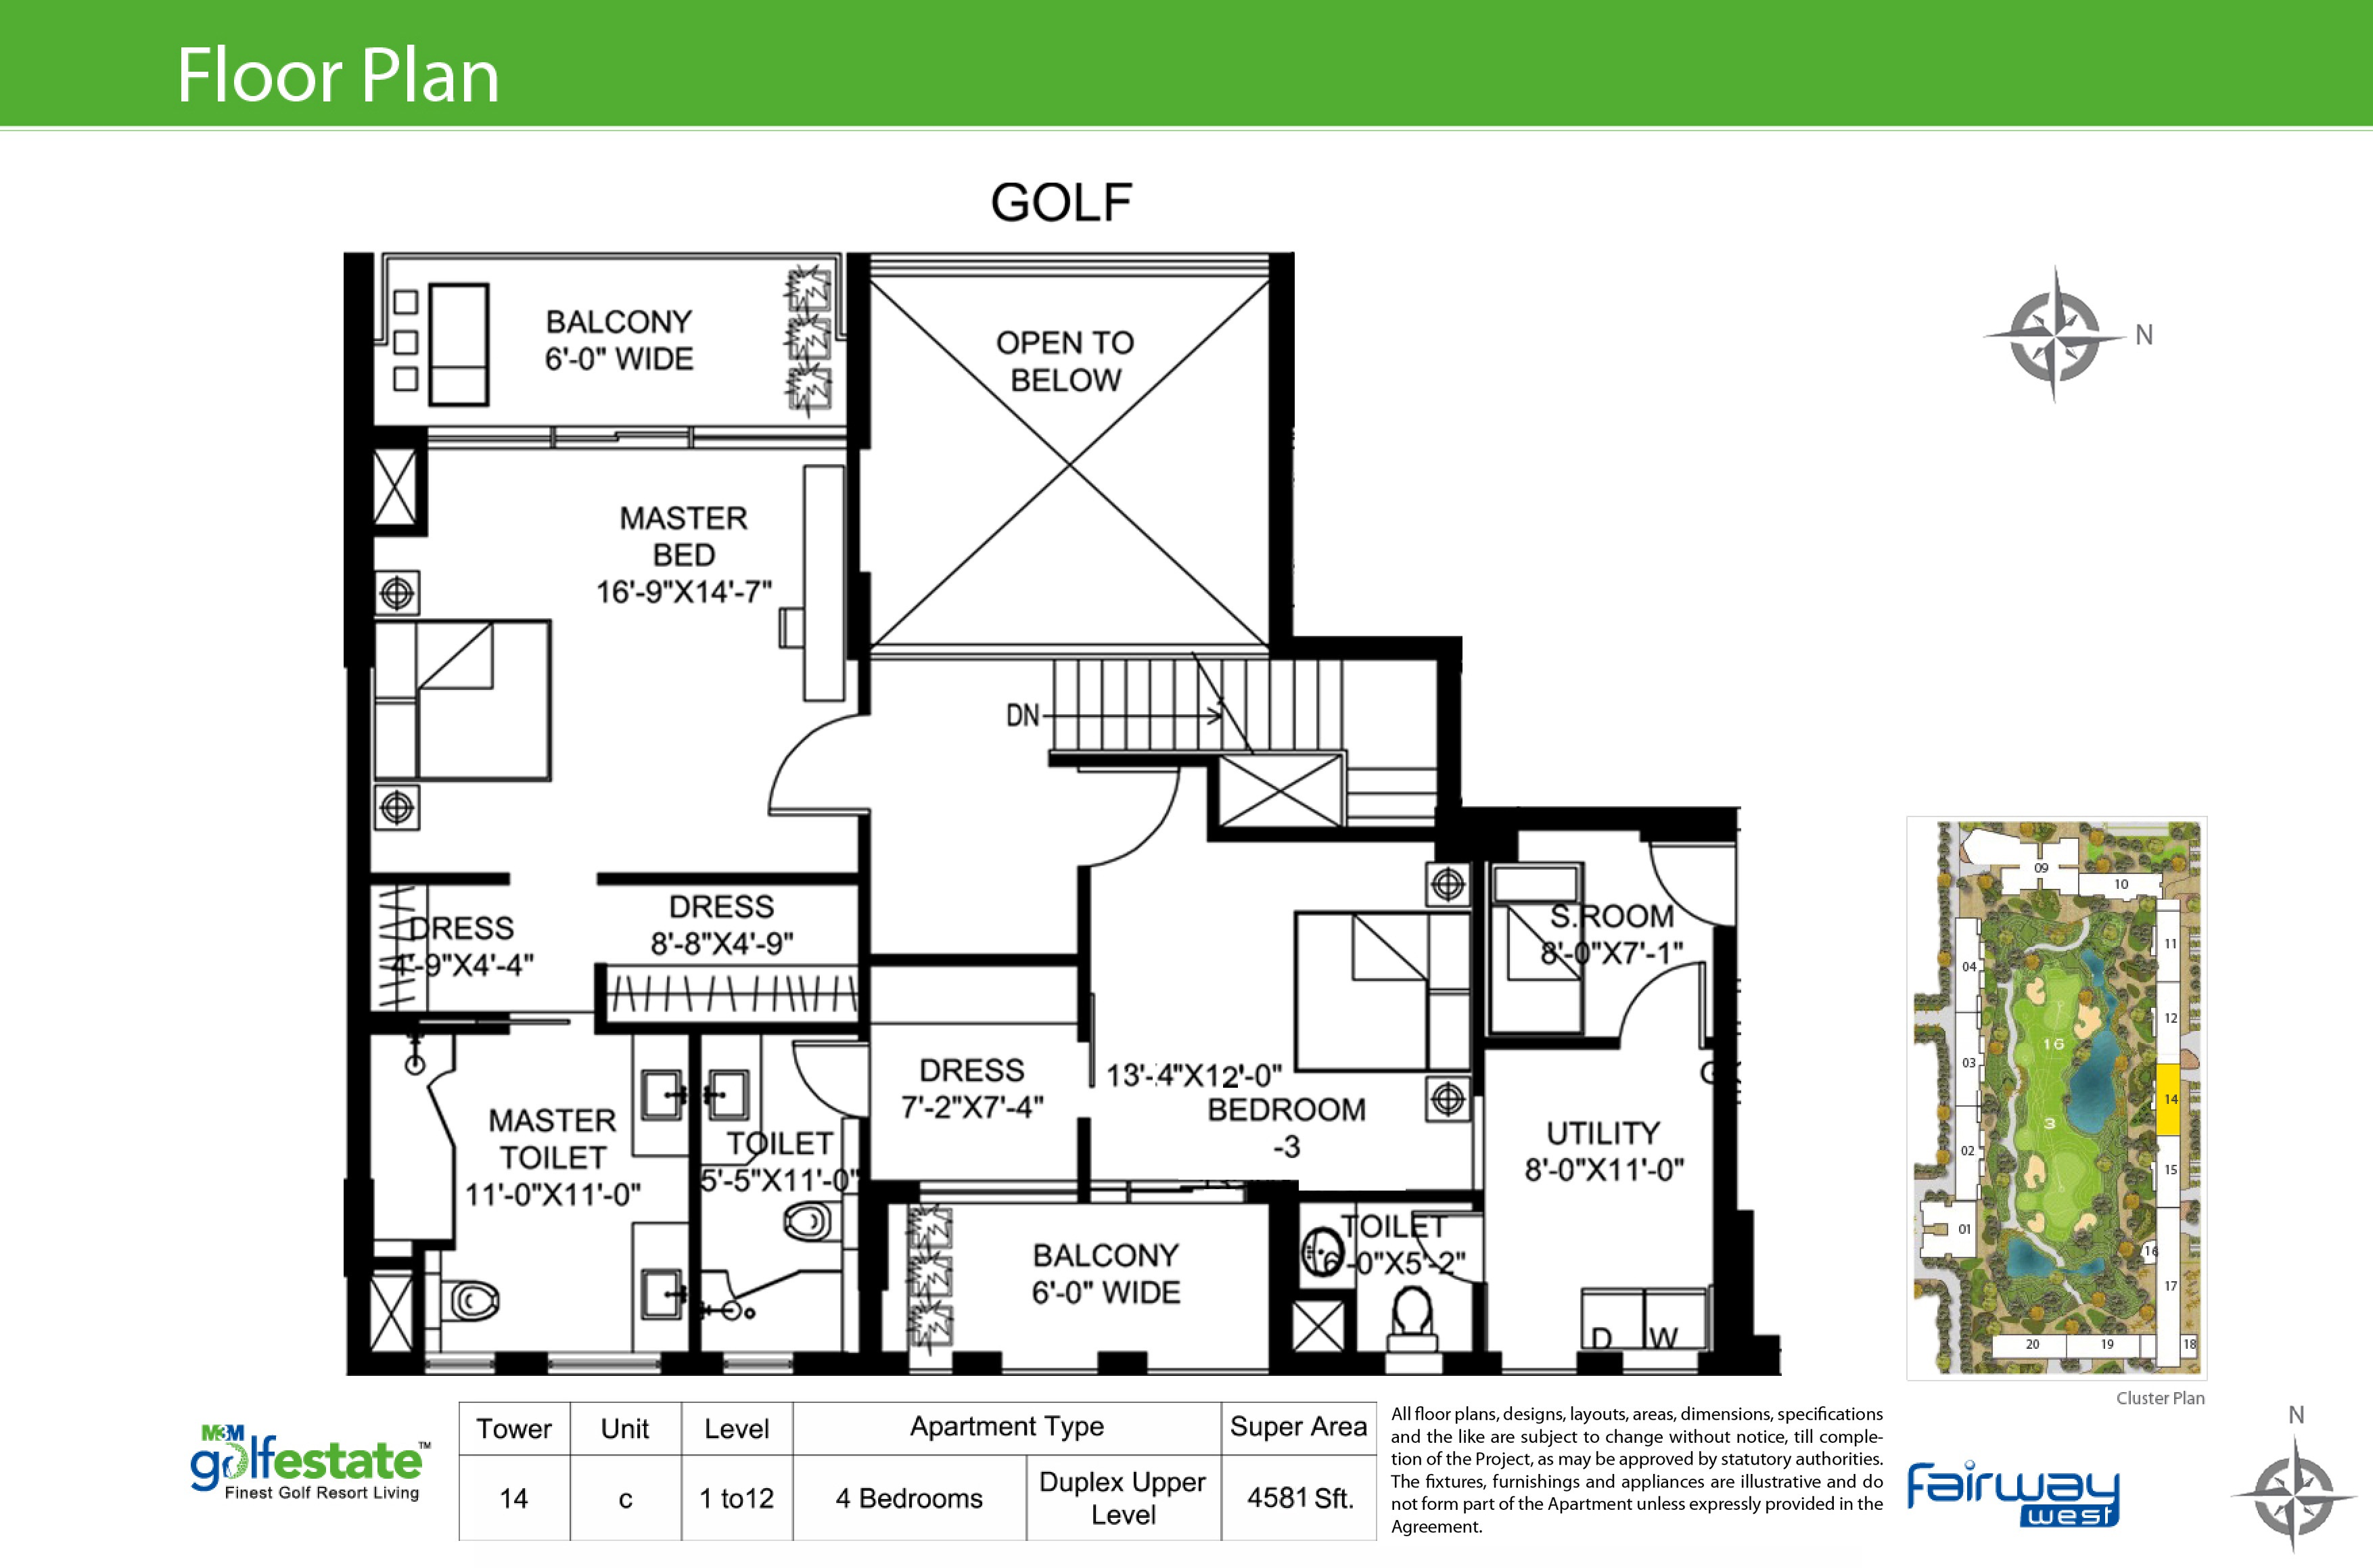 Floor plan of M3M Golf estate Fairway West 4581 Sqft